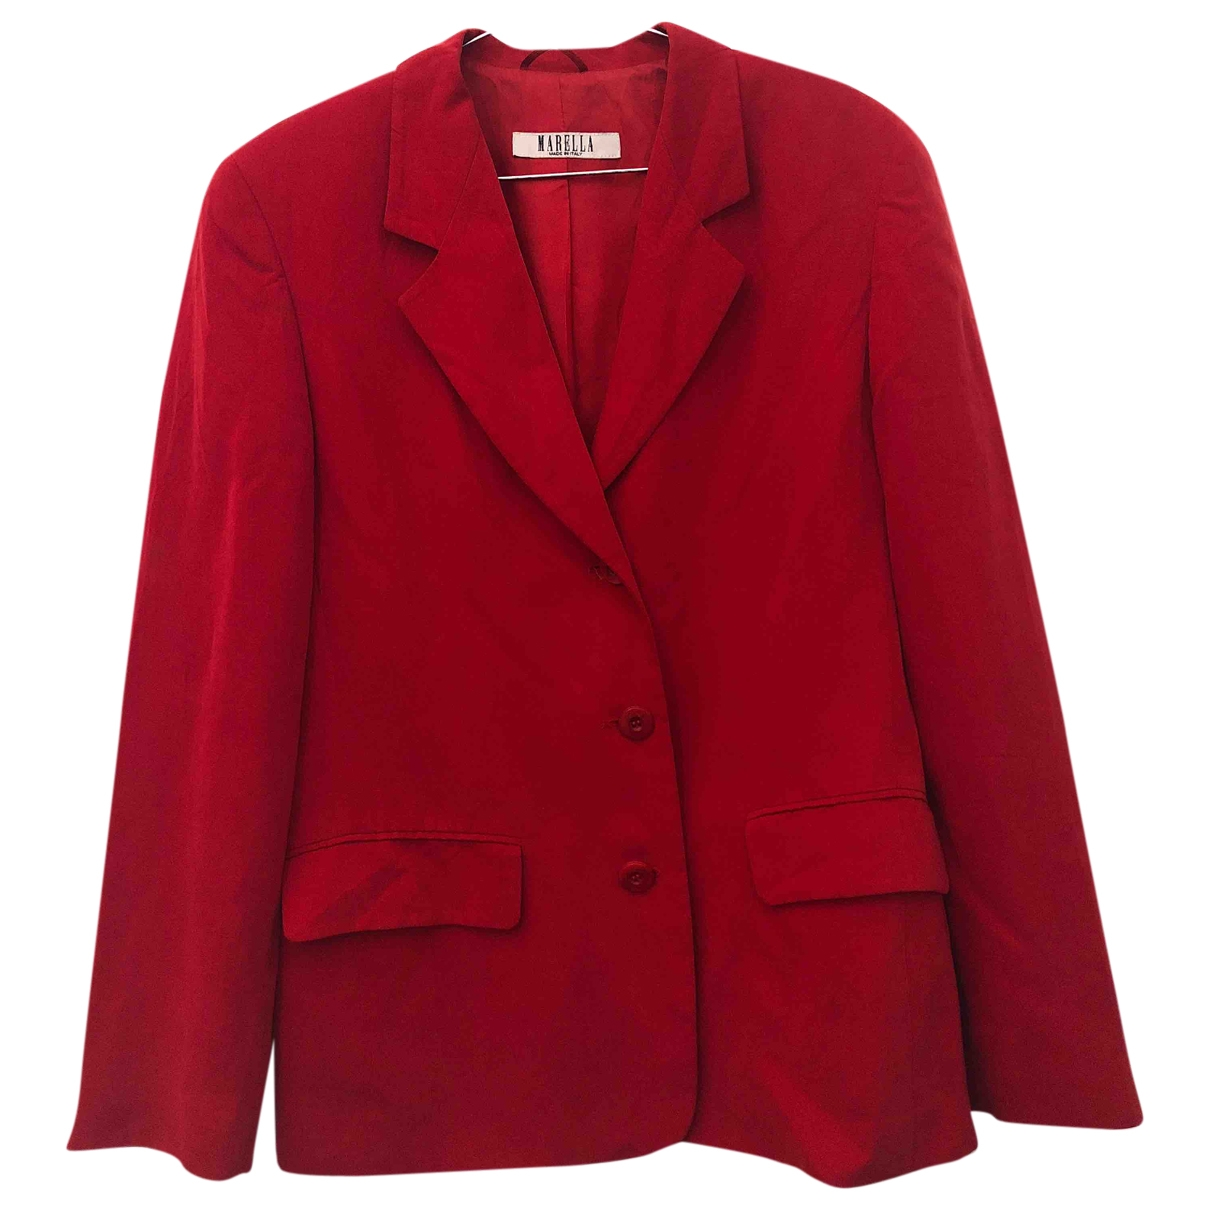 Marella \N Red jacket for Women 44 IT